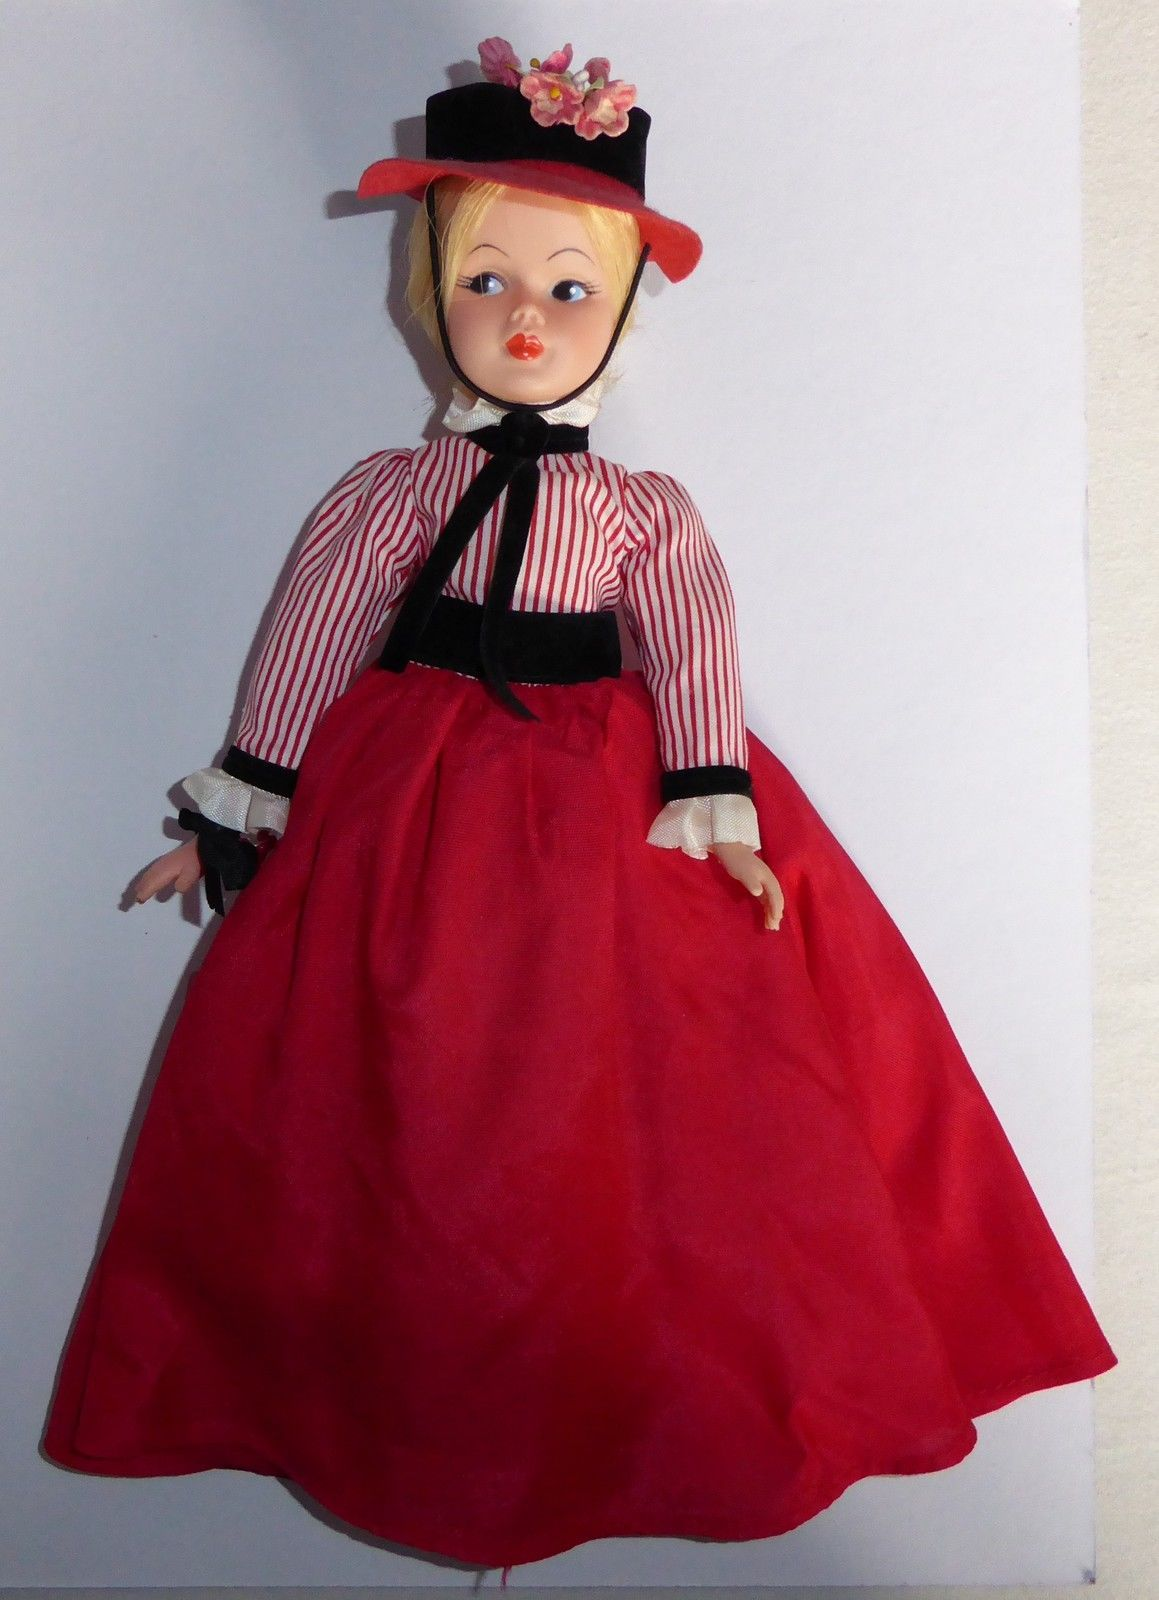 Mary Poppins Bambola Horseman Vintage Doll Bambole Bambole Fashion